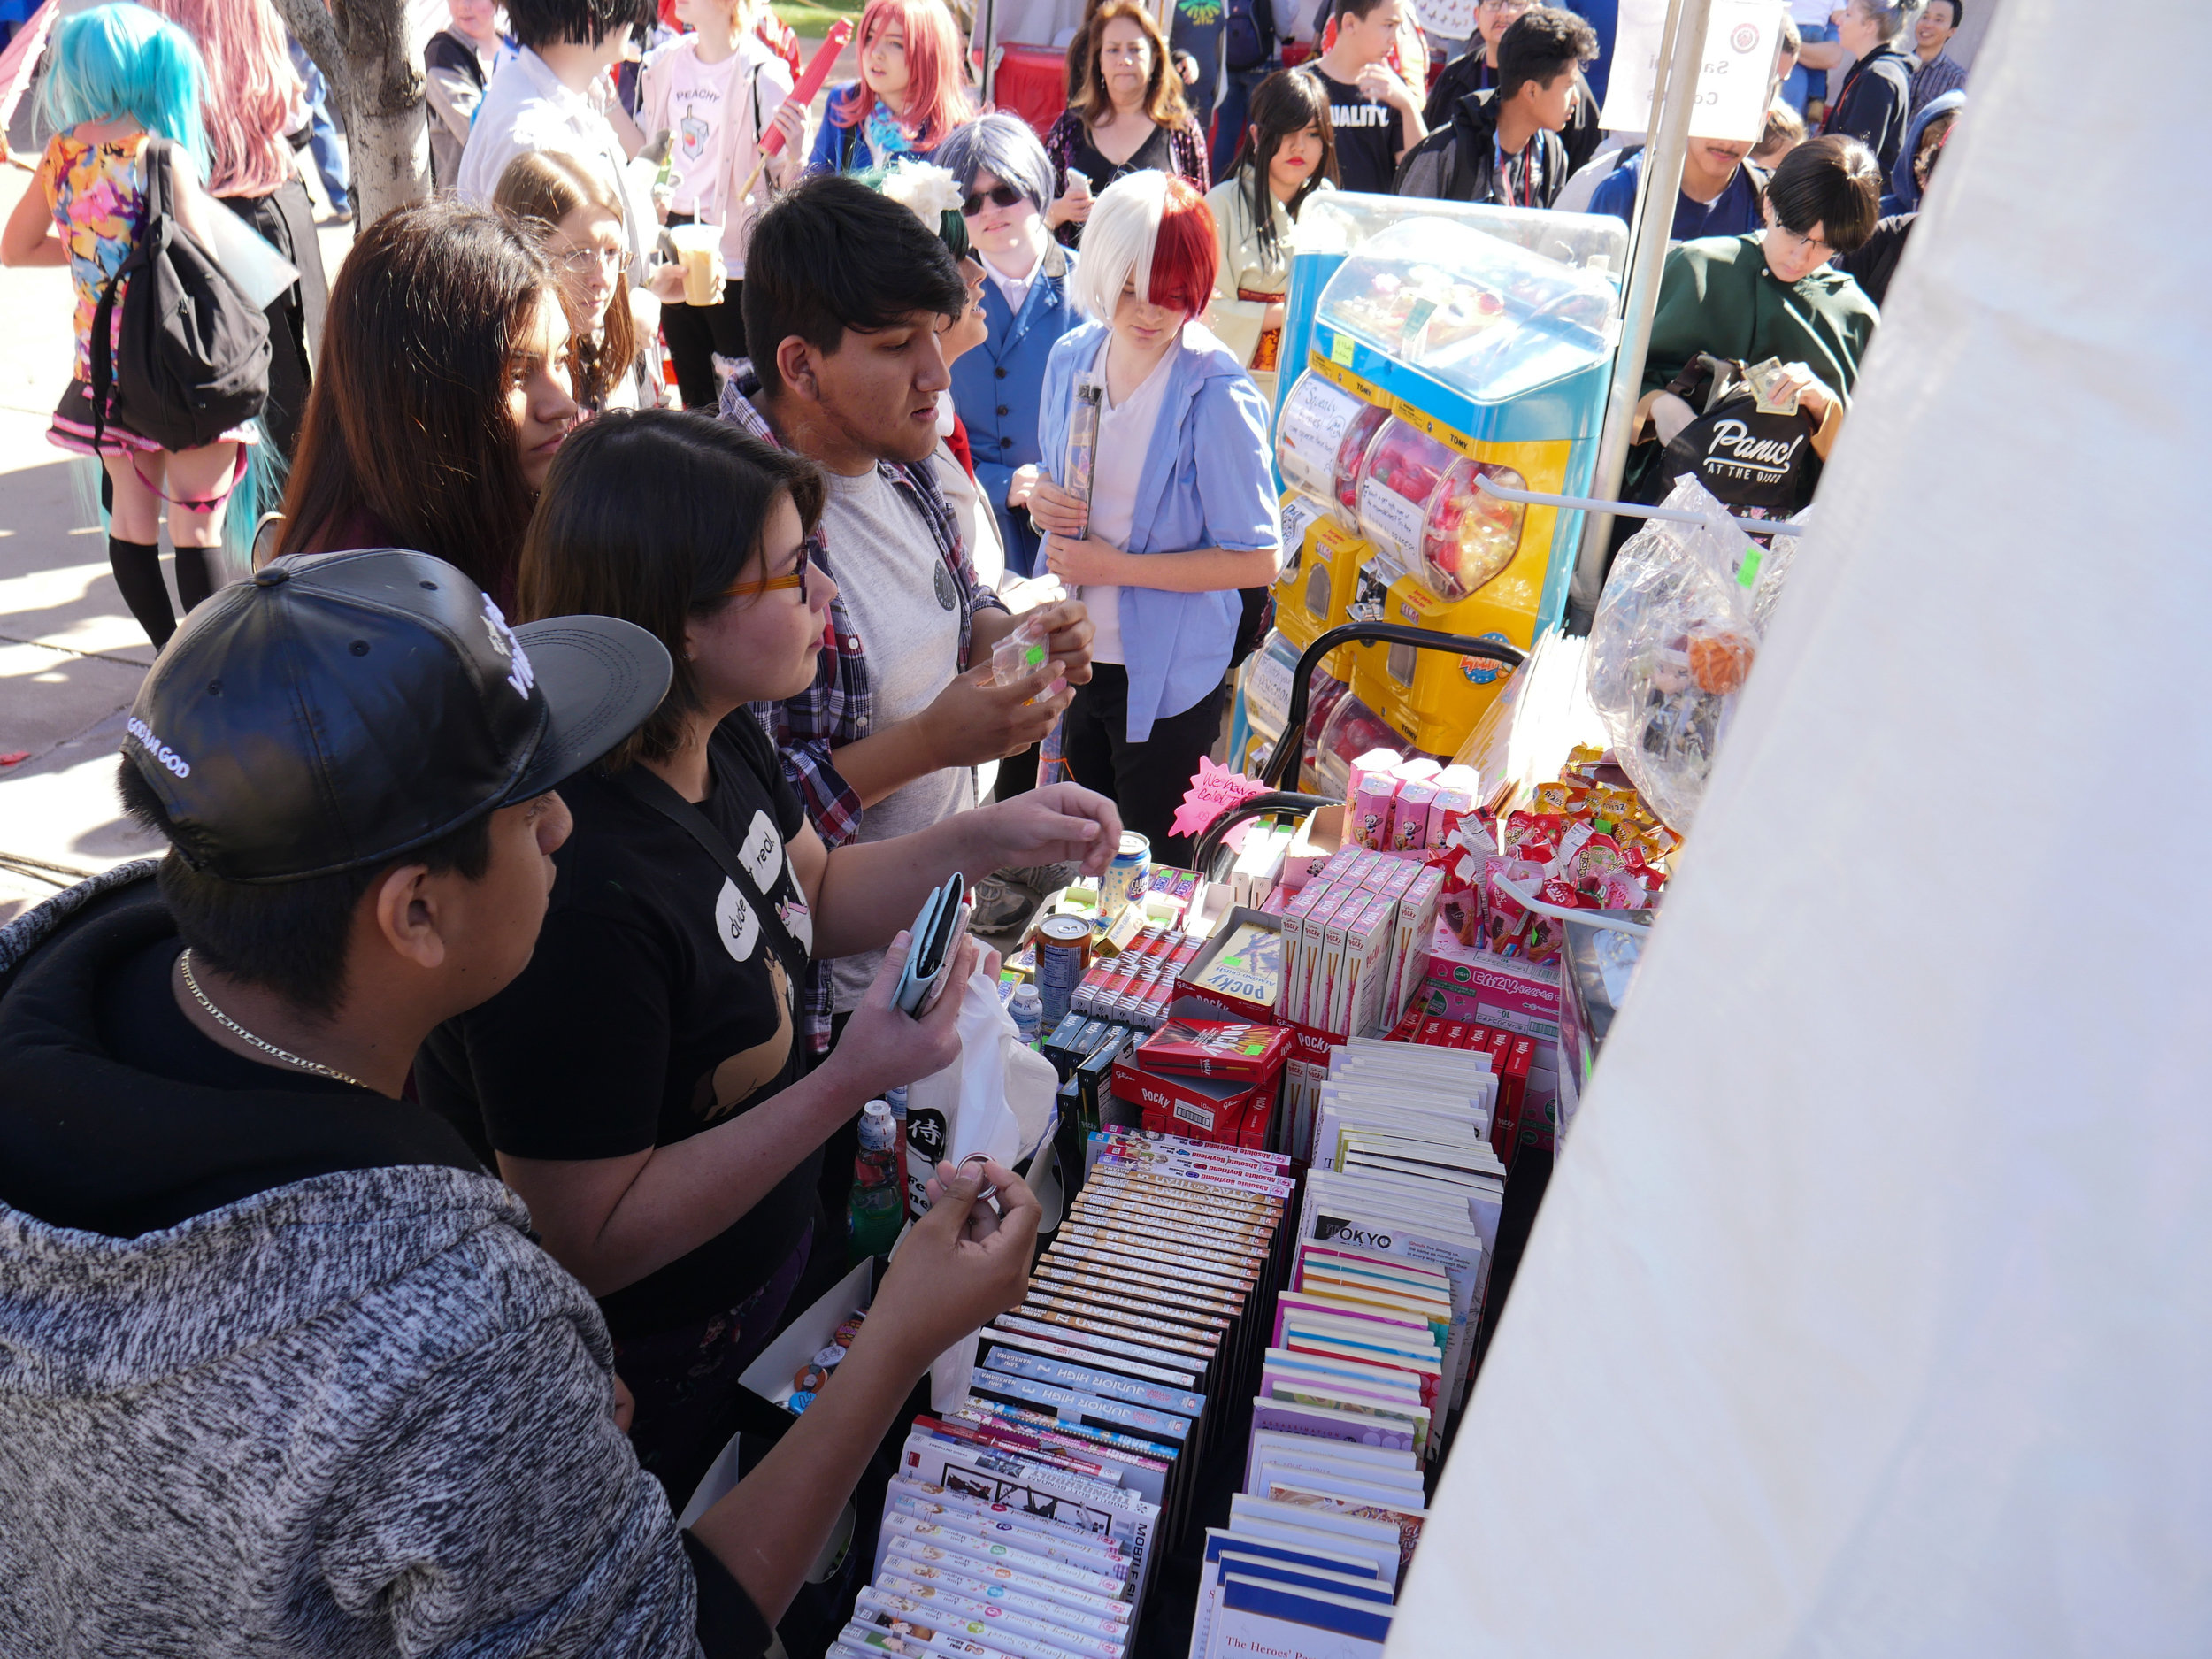 Visitors to the Arizona Matsuri Festival browse a stand full of manga, Japanese snacks and other souvenirs on Feb. 24, 2018 in Phoenix, Ariz.  (Nick Serpa/azcentral)